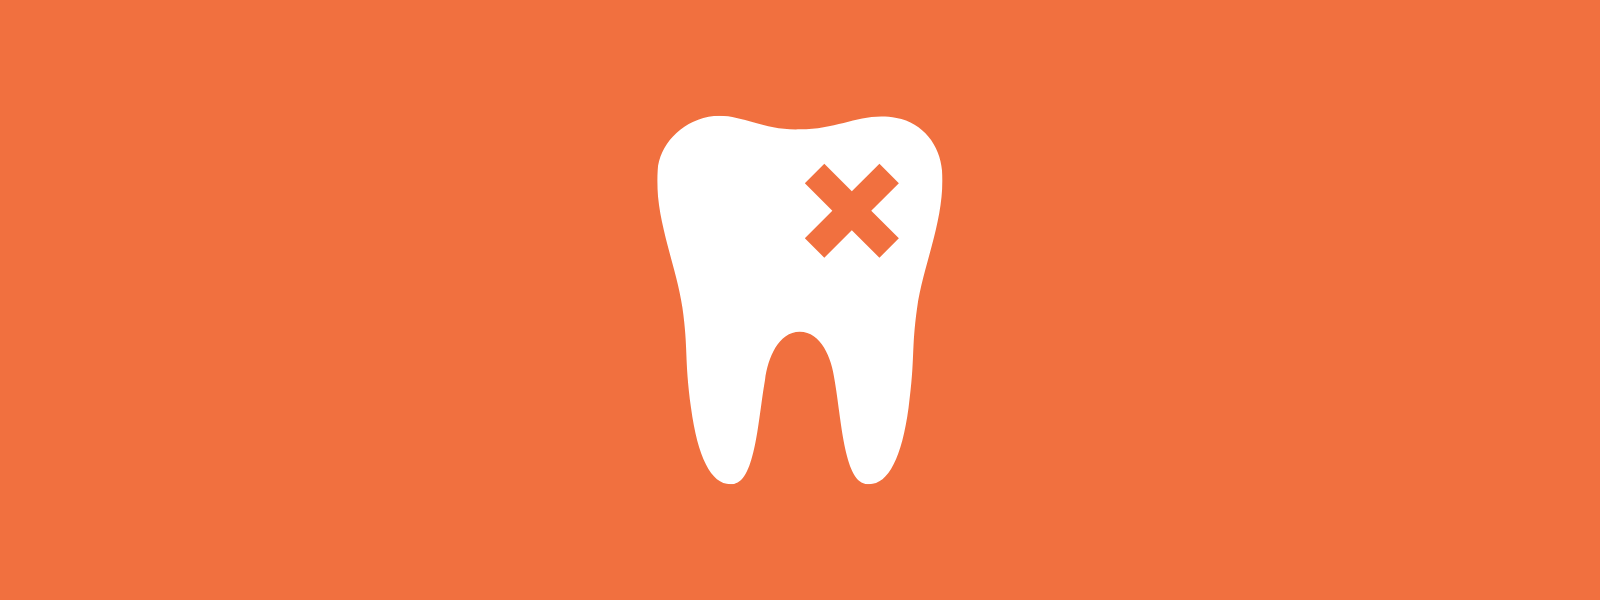 Icon background of dental issue